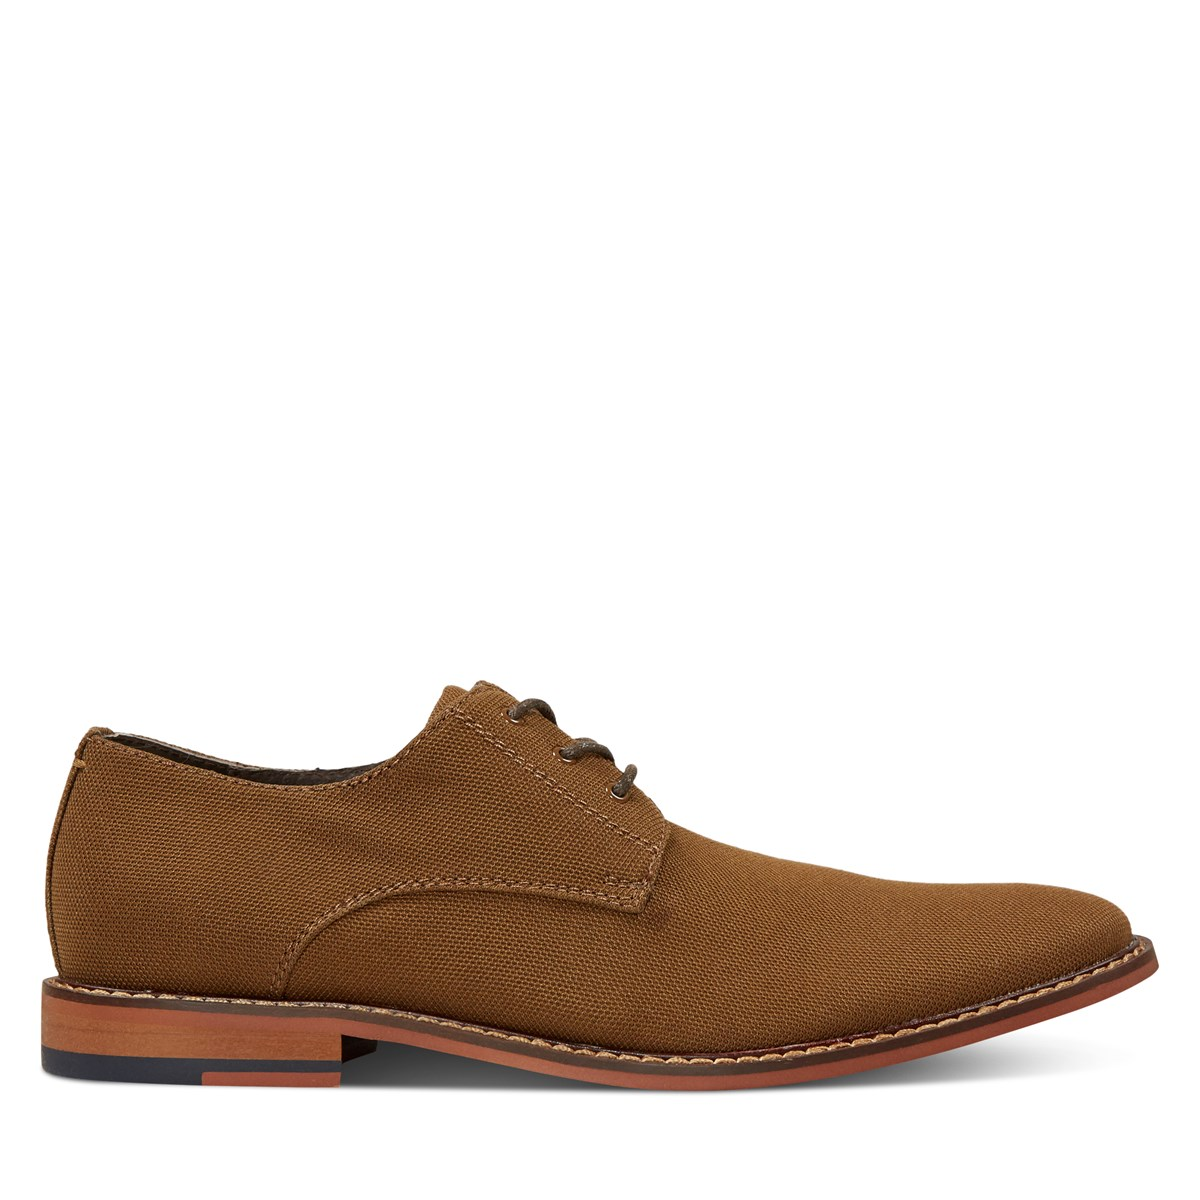 Men's Alberto Lace up Shoes in Tan